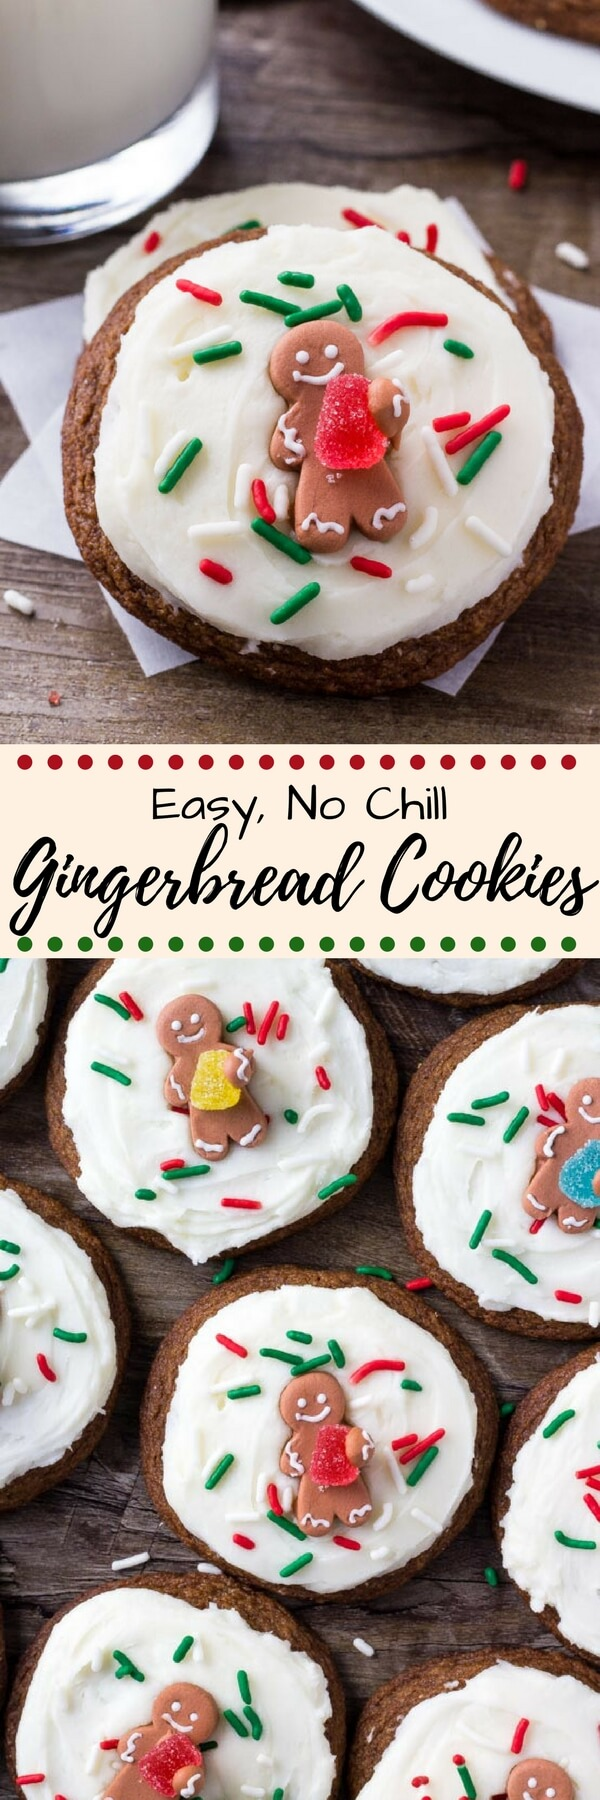 These easy gingerbread cookies are soft, chewy & perfect for the holidays. It's a no chill recipe - so they take way less time to make than regular gingerbread cookies. Then they're topped with fluffy cream cheese frosting. #gingerbreadcookies #holidaycookies #christmascookies #gingermolassescookies